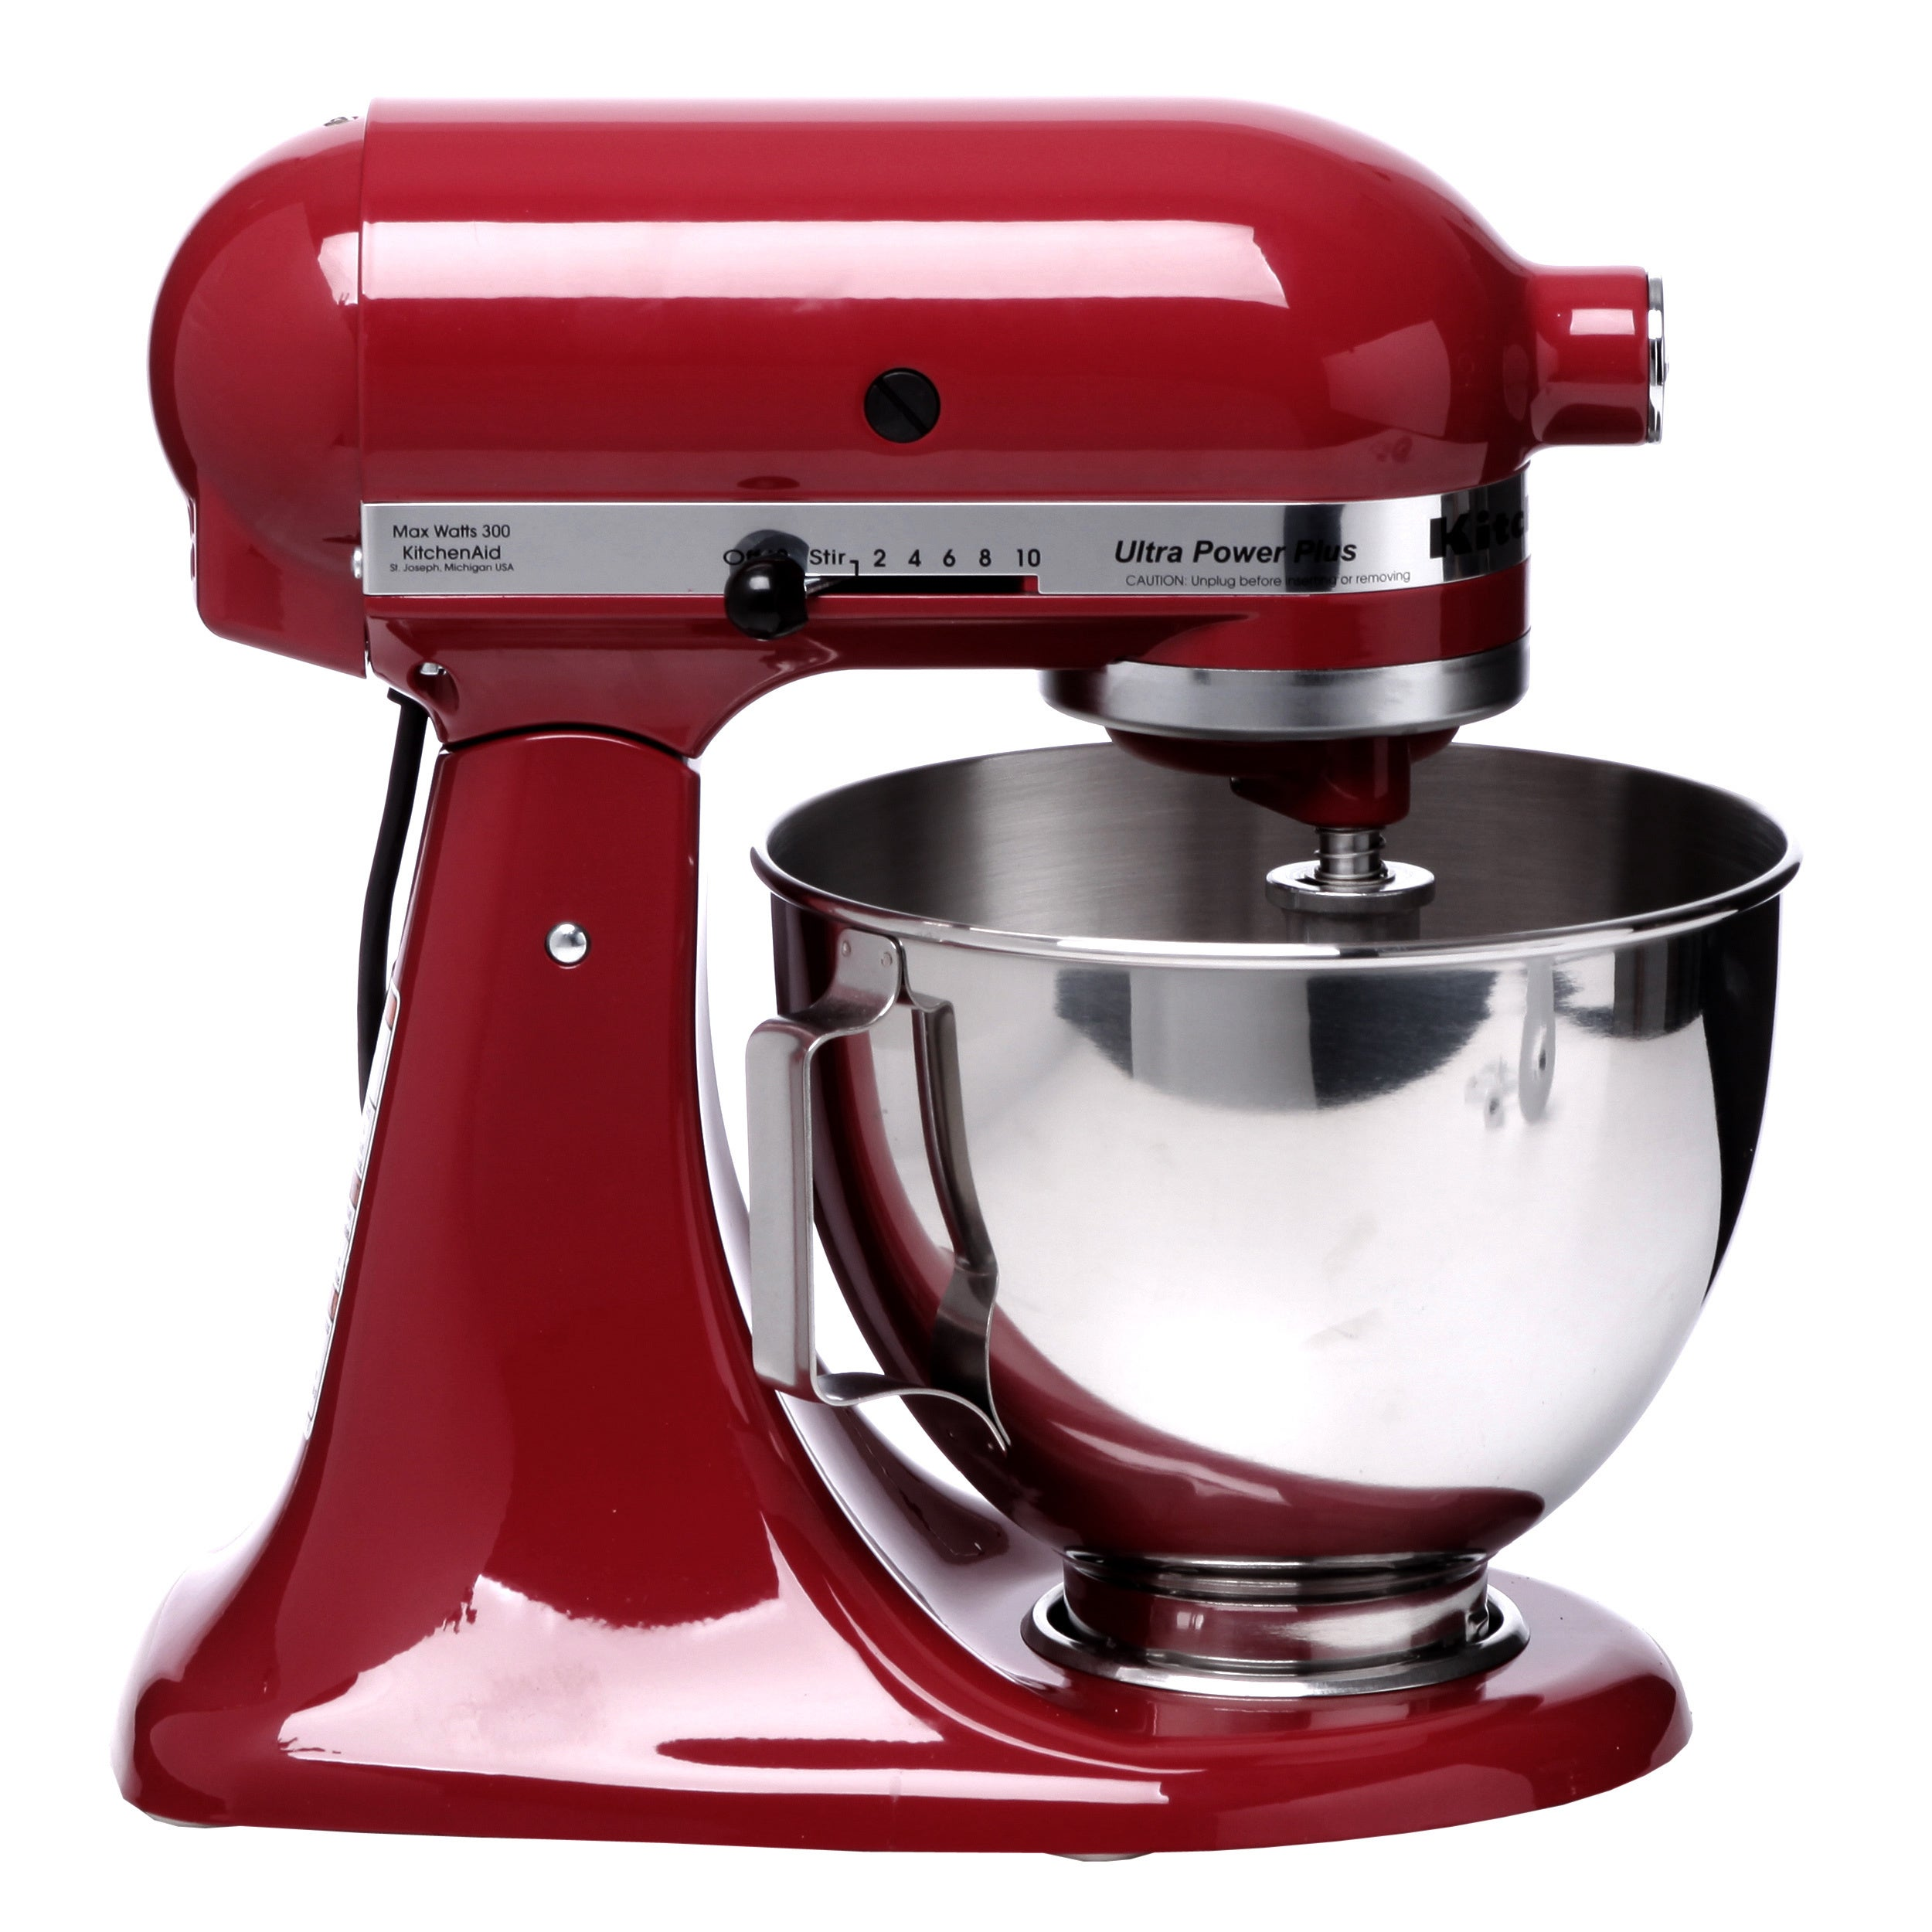 Kitchenaid Ksm100pser Empire Red 4 5 Quart Ultra Plus Stand Mixer Free Shipping Today 14981034